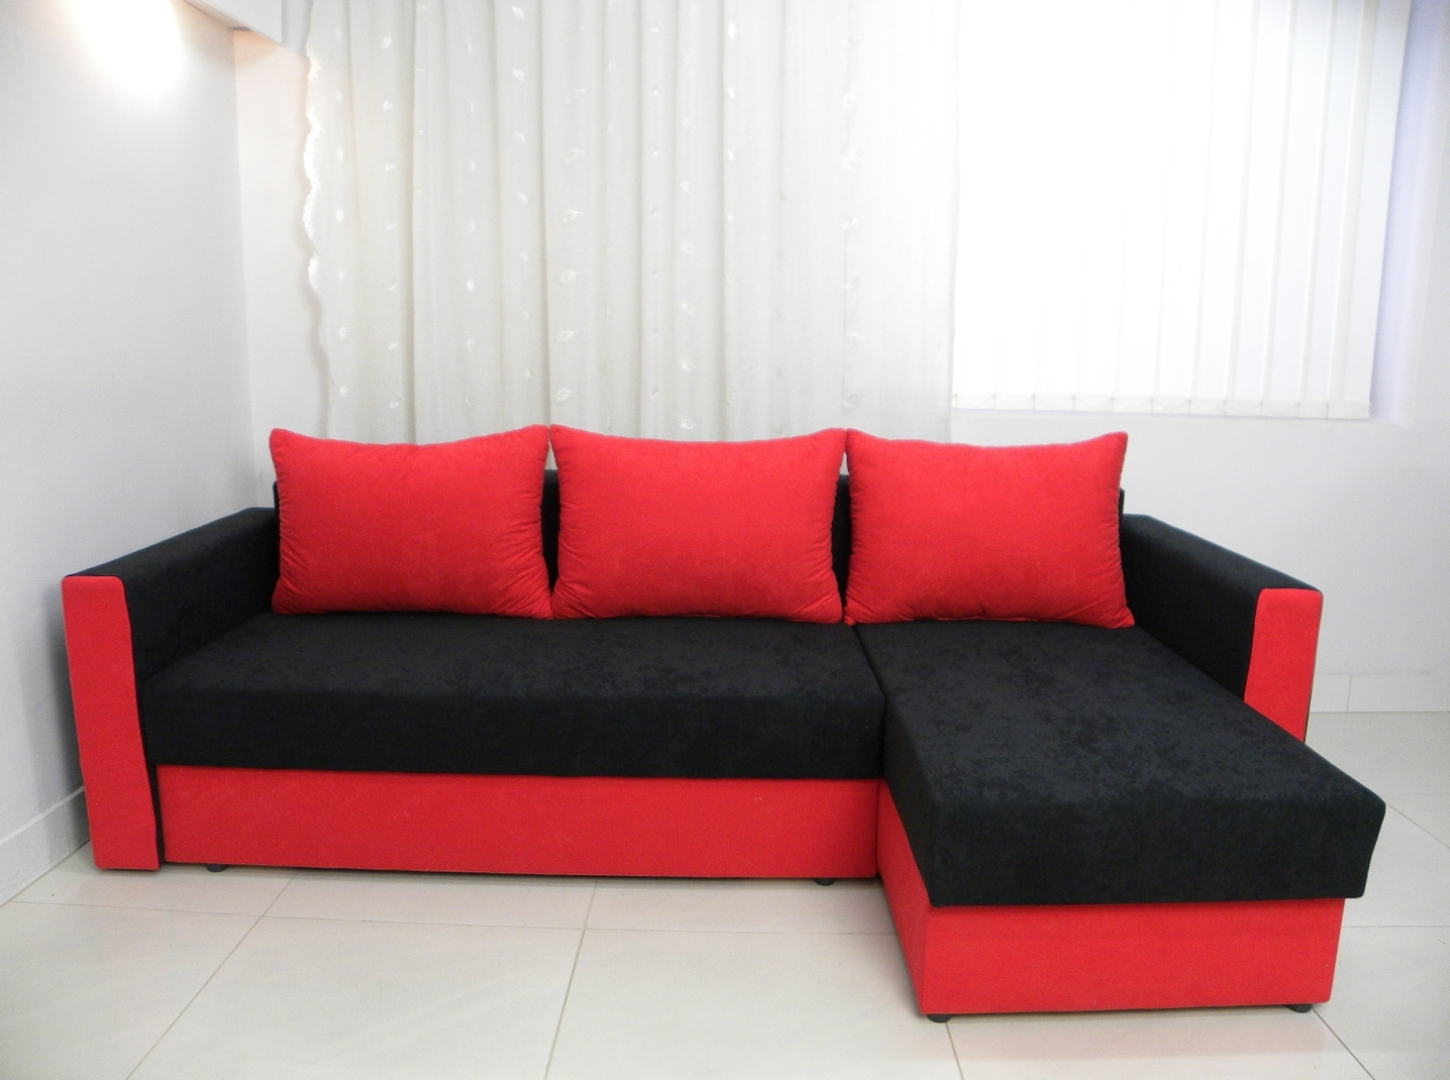 Red And Black Sofas Throughout Best And Newest Home Decor Red And Black Sofas Fabric Sofa Loveseat Set Fabricred (View 11 of 15)